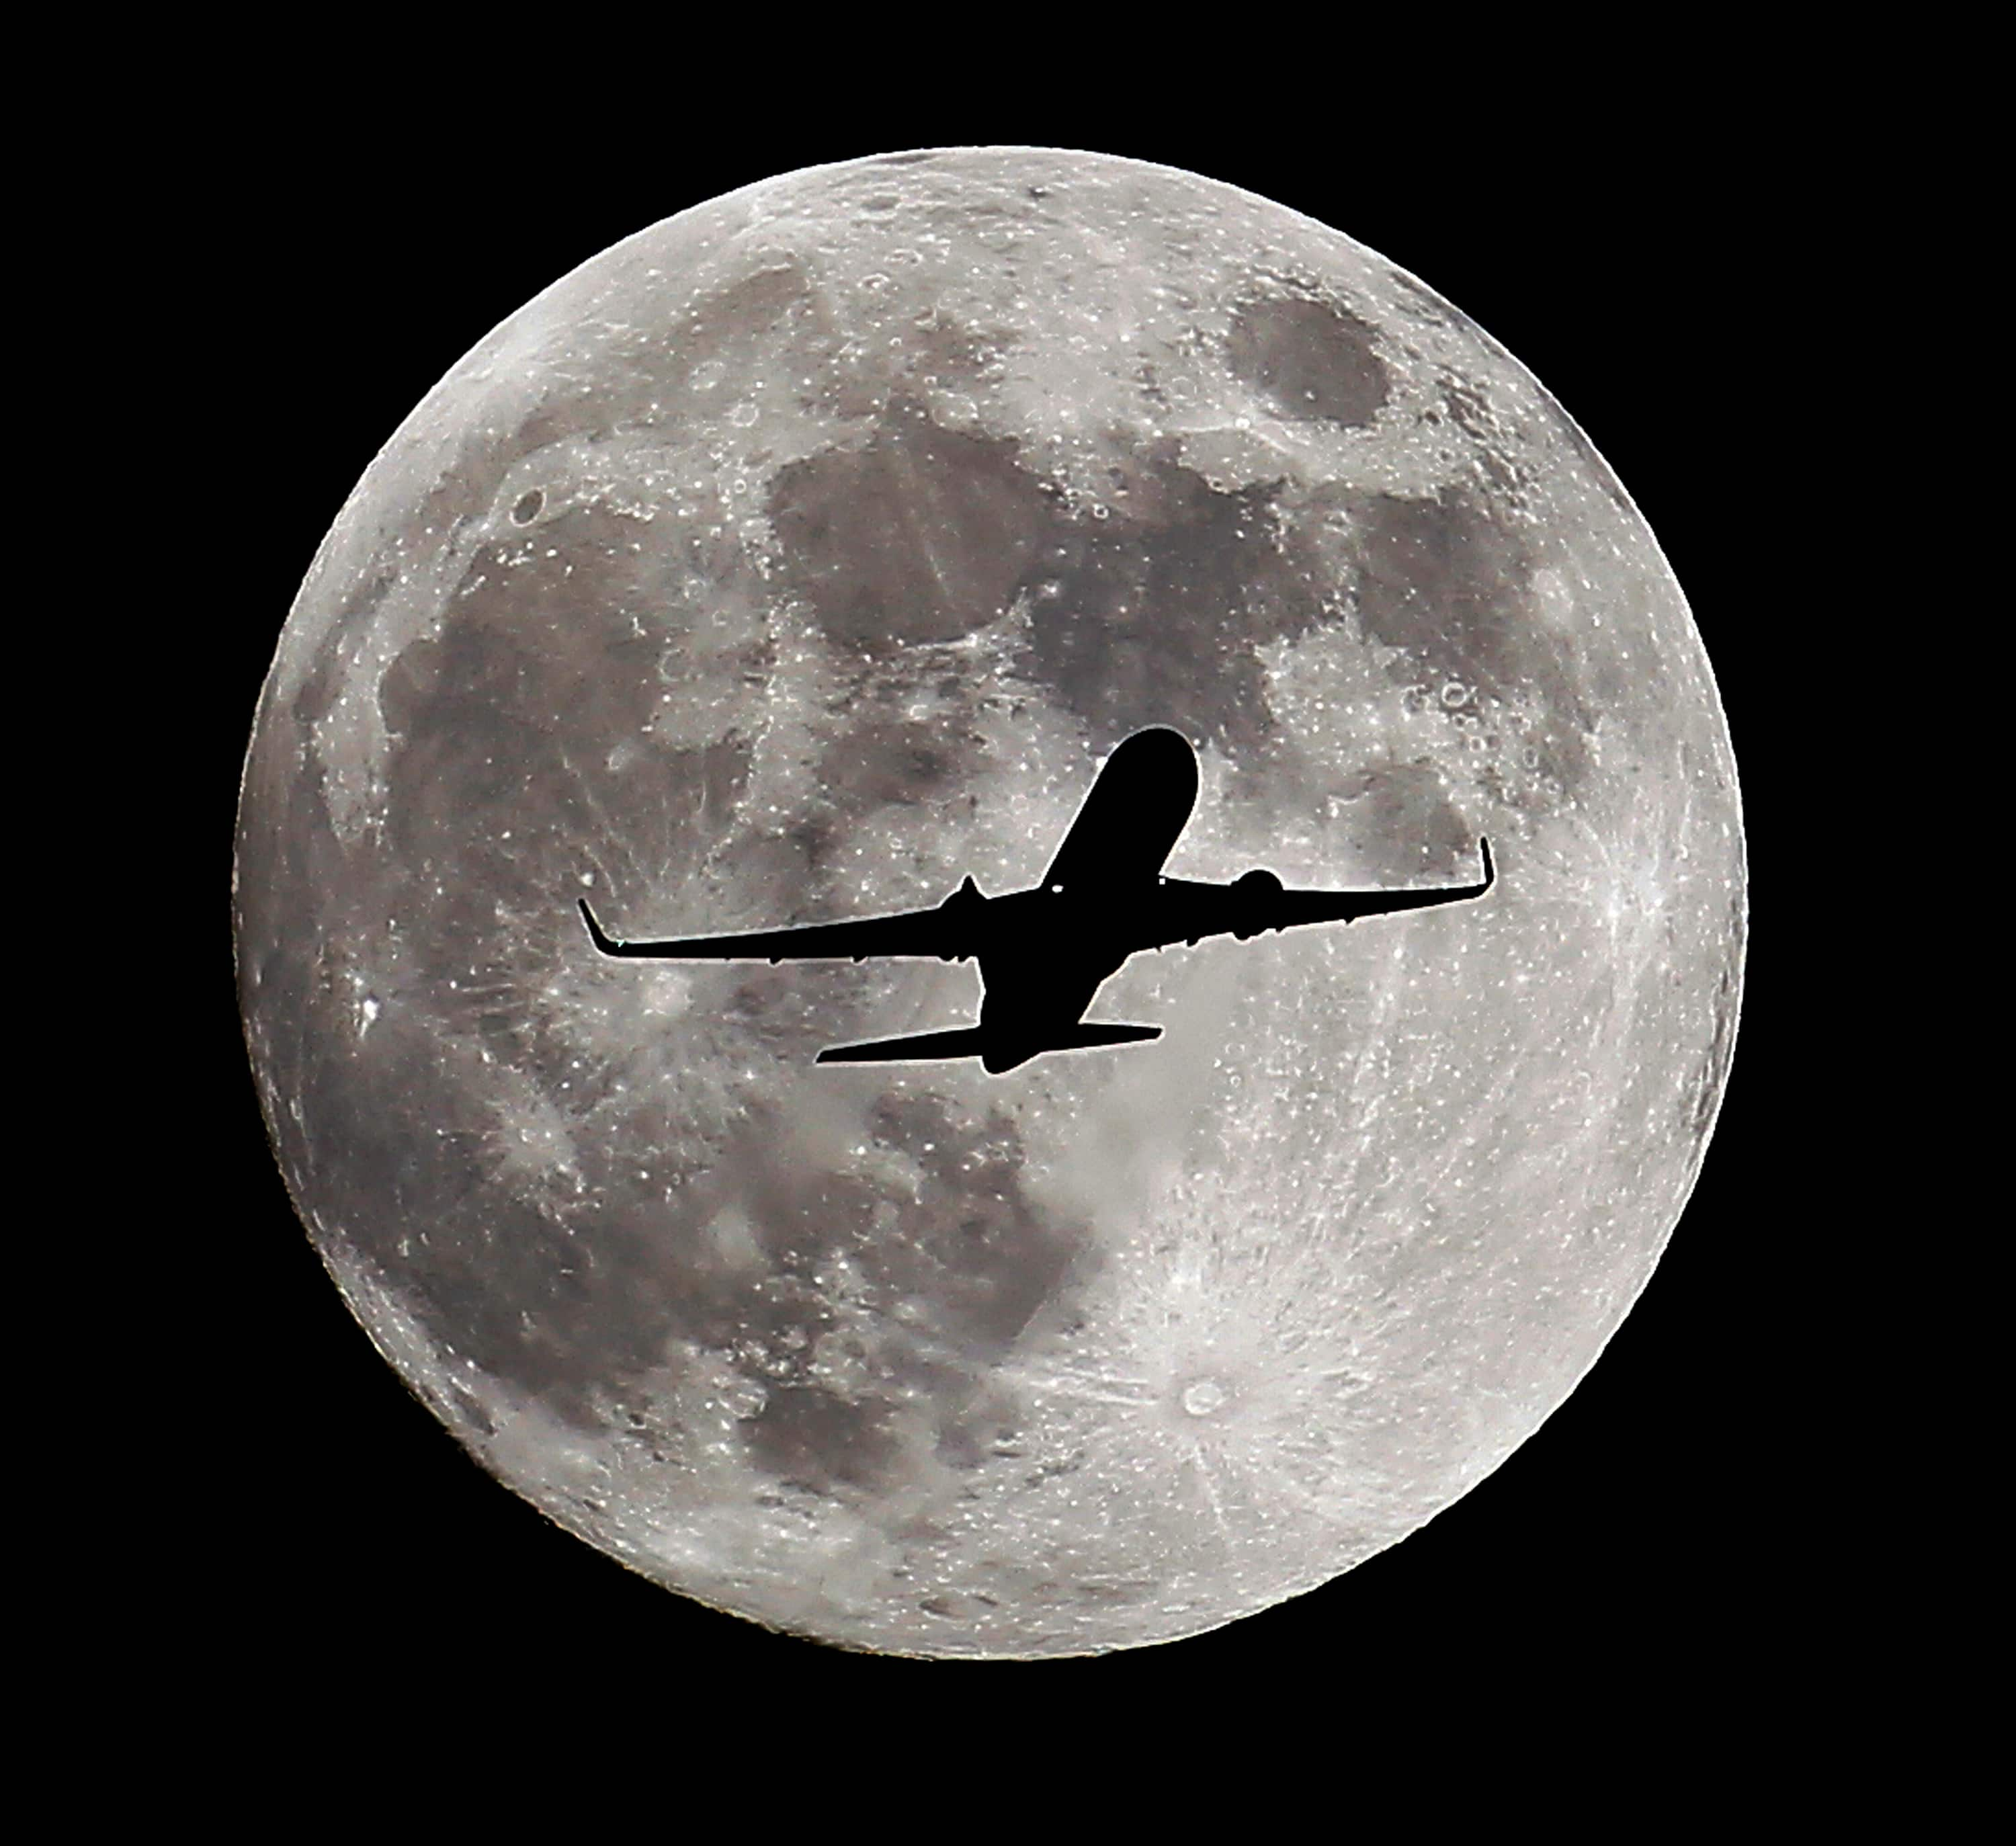 A passenger airliner crosses the full moon, also known as the Hunter's Moon, a few hours prior to the beginning of a total lunar eclipse that will create an effect known as the Blood Moon, in Whittier, Ca.